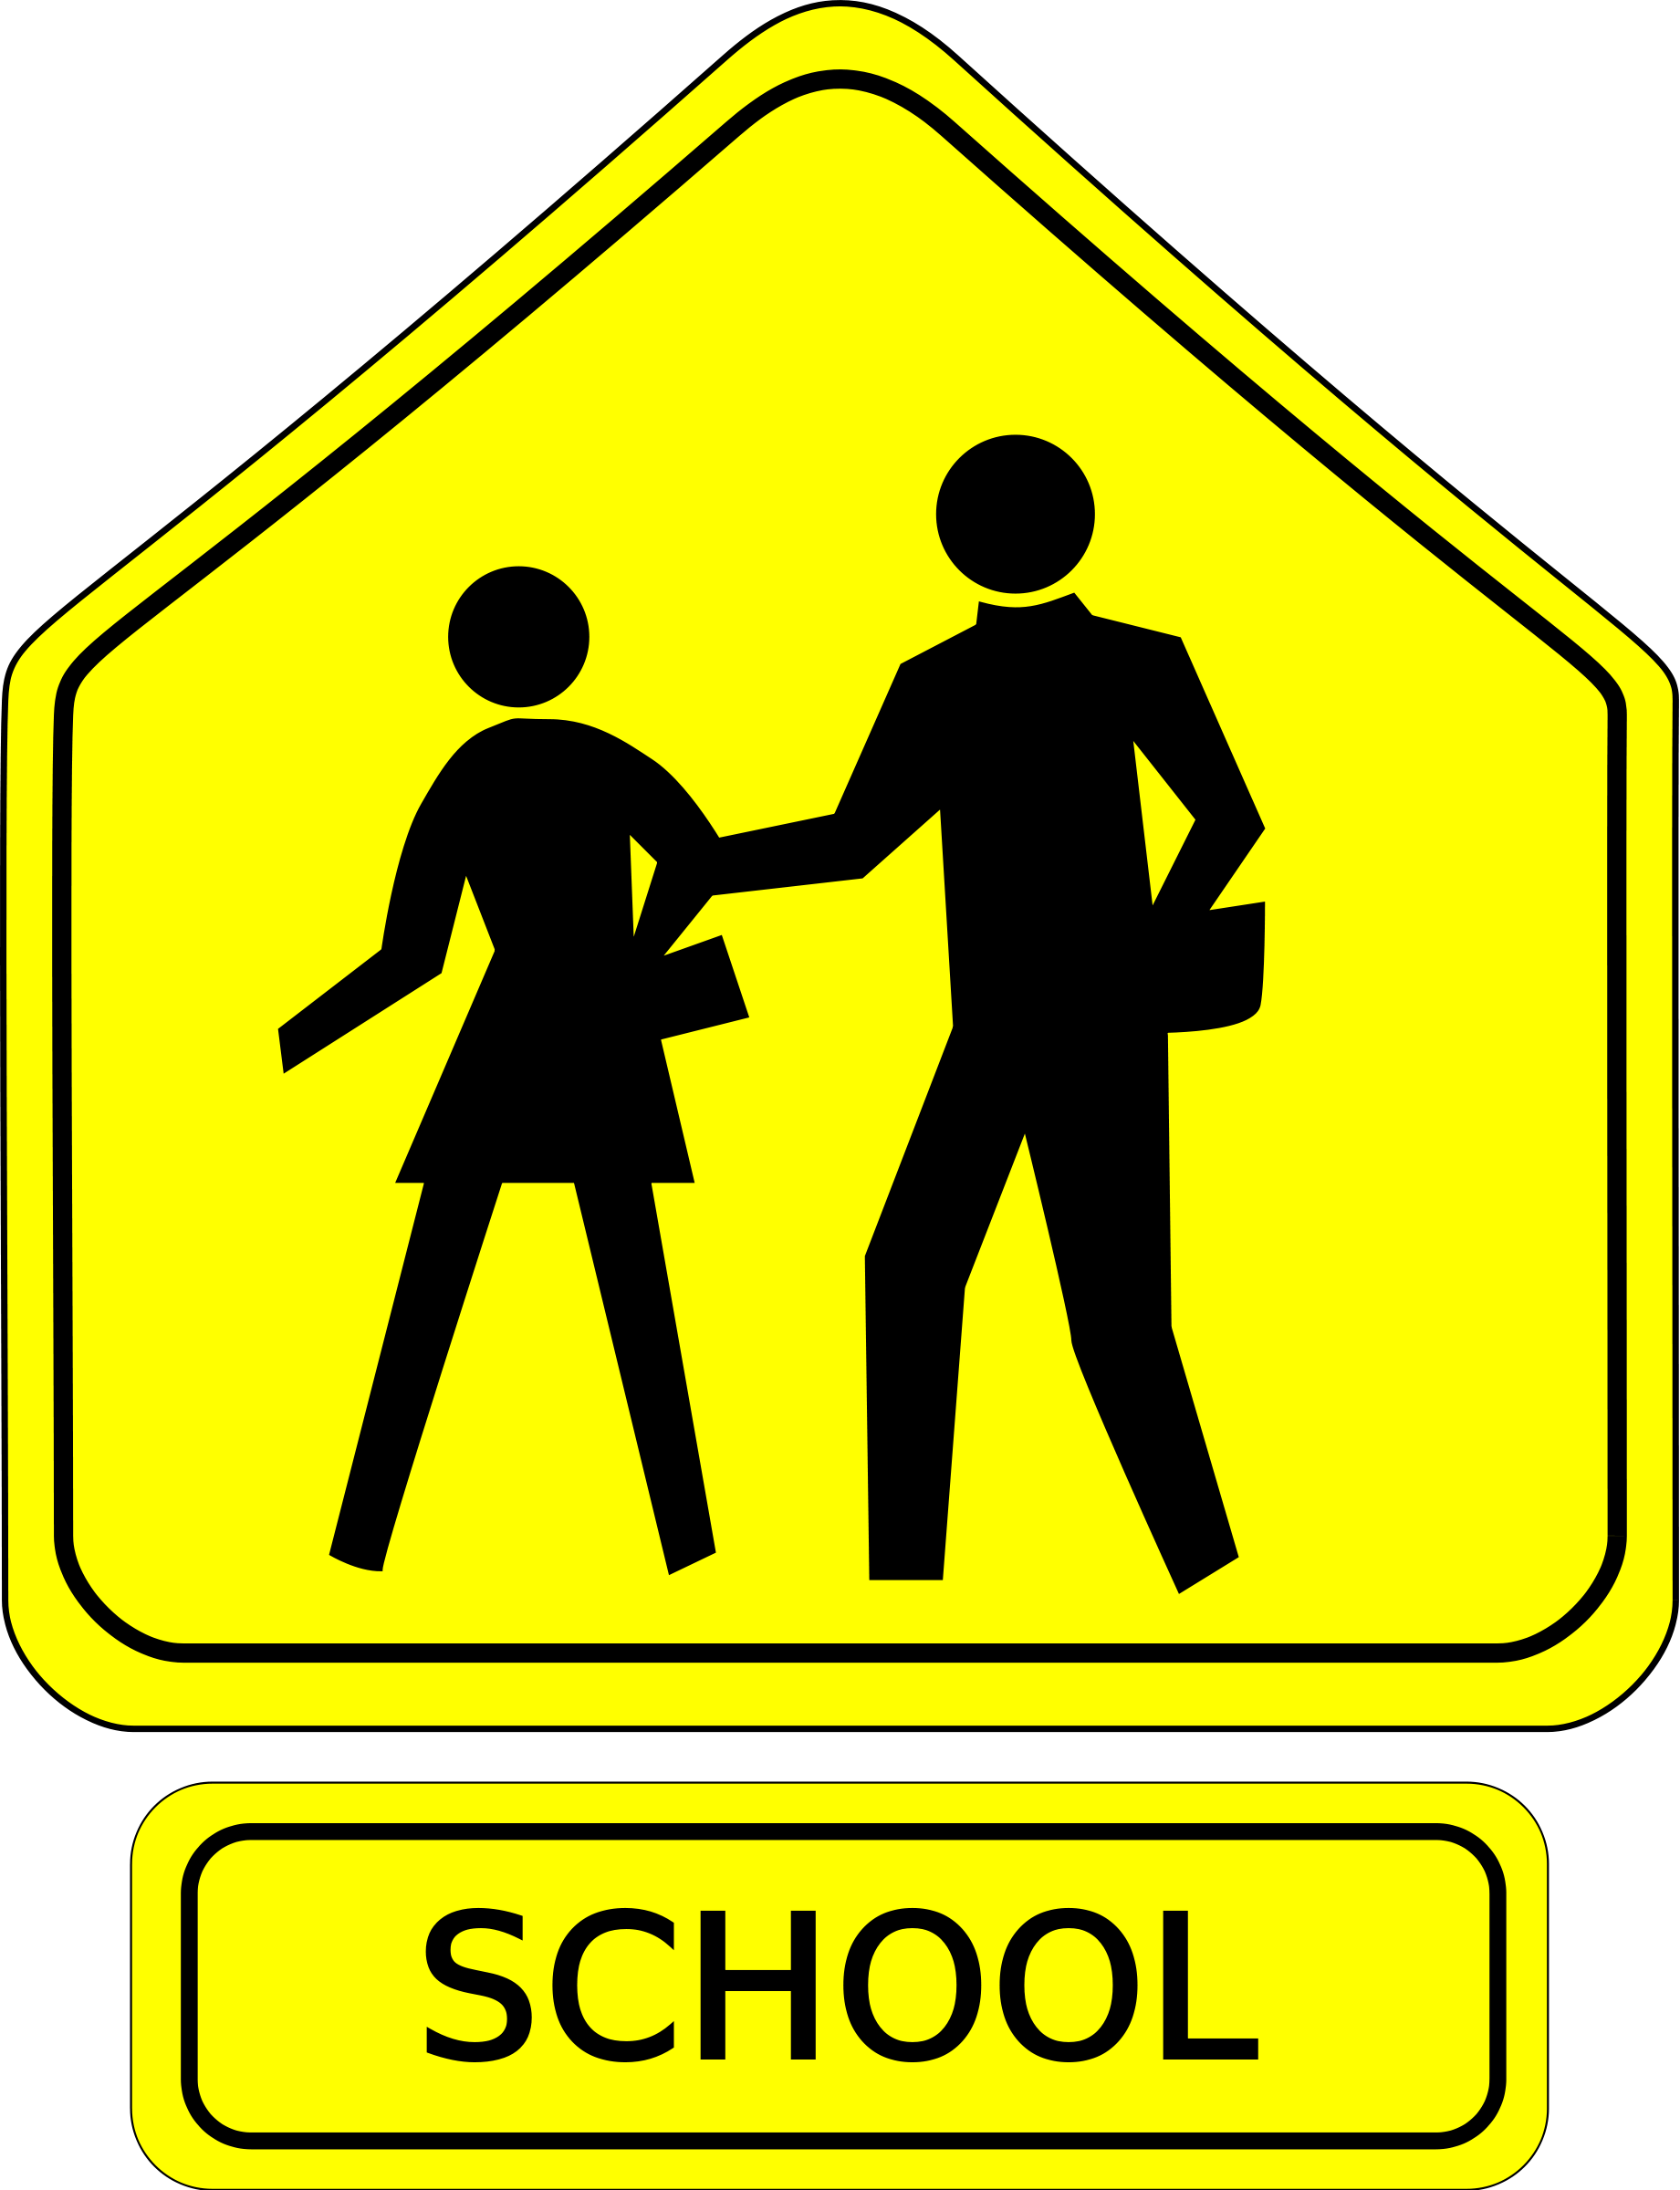 Traffic clipart school traffic Images Clipart Traffic Clipart Sign